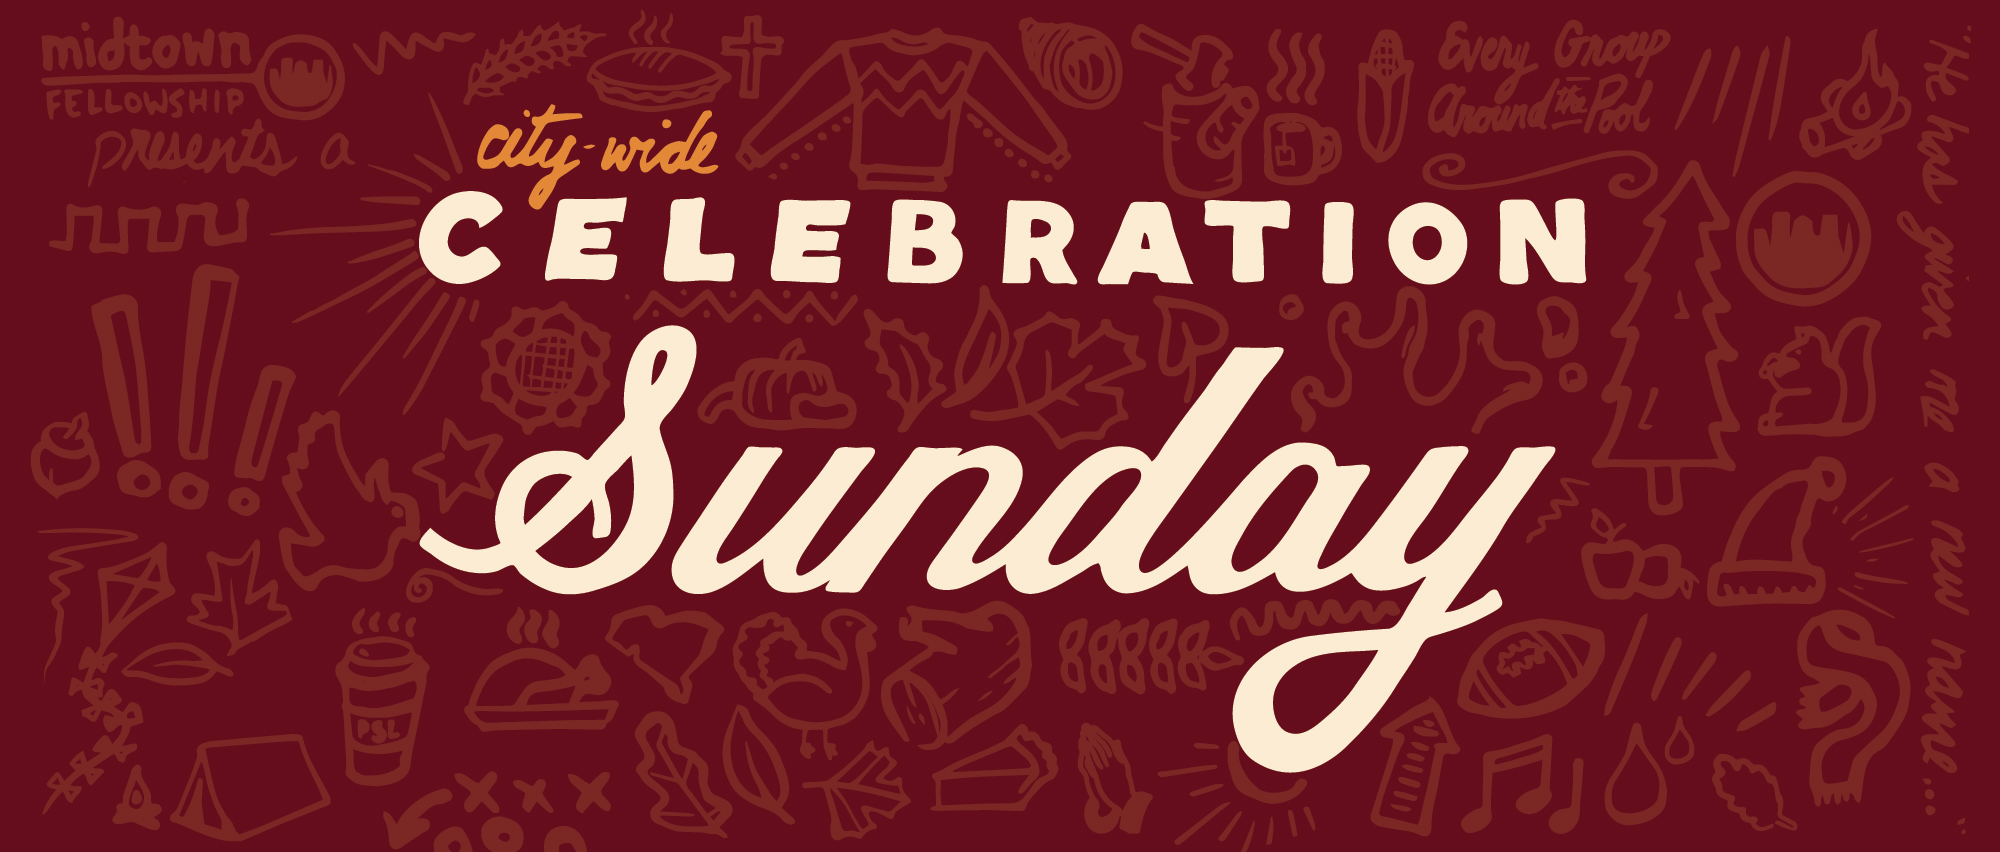 Celebration Sunday Web-01.jpg